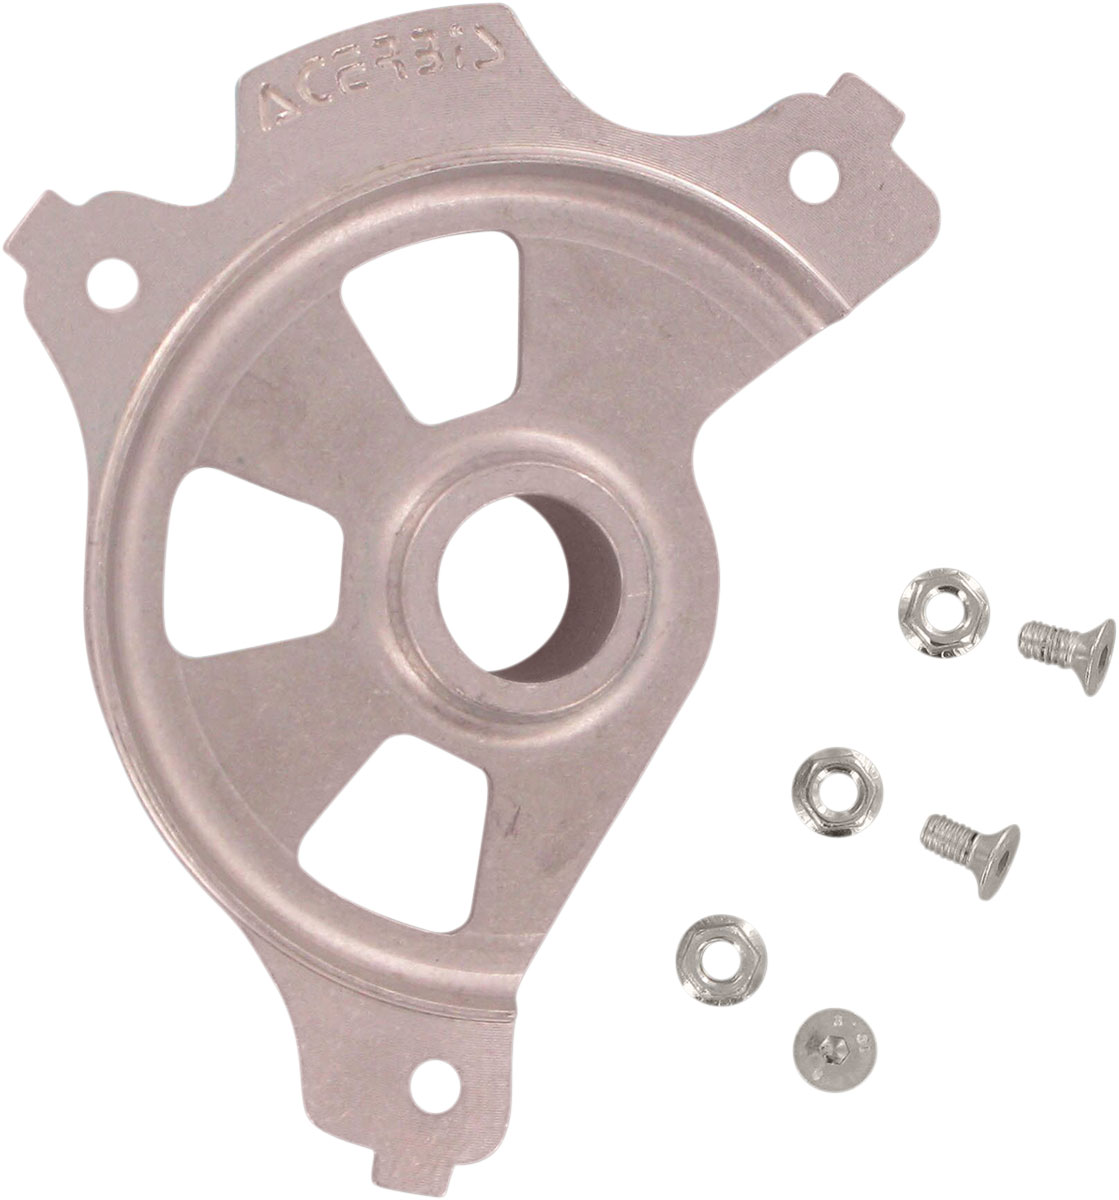 ACERBIS Mount Kit for X-Brake / Spider Evo Front Disc Covers (2449489999)